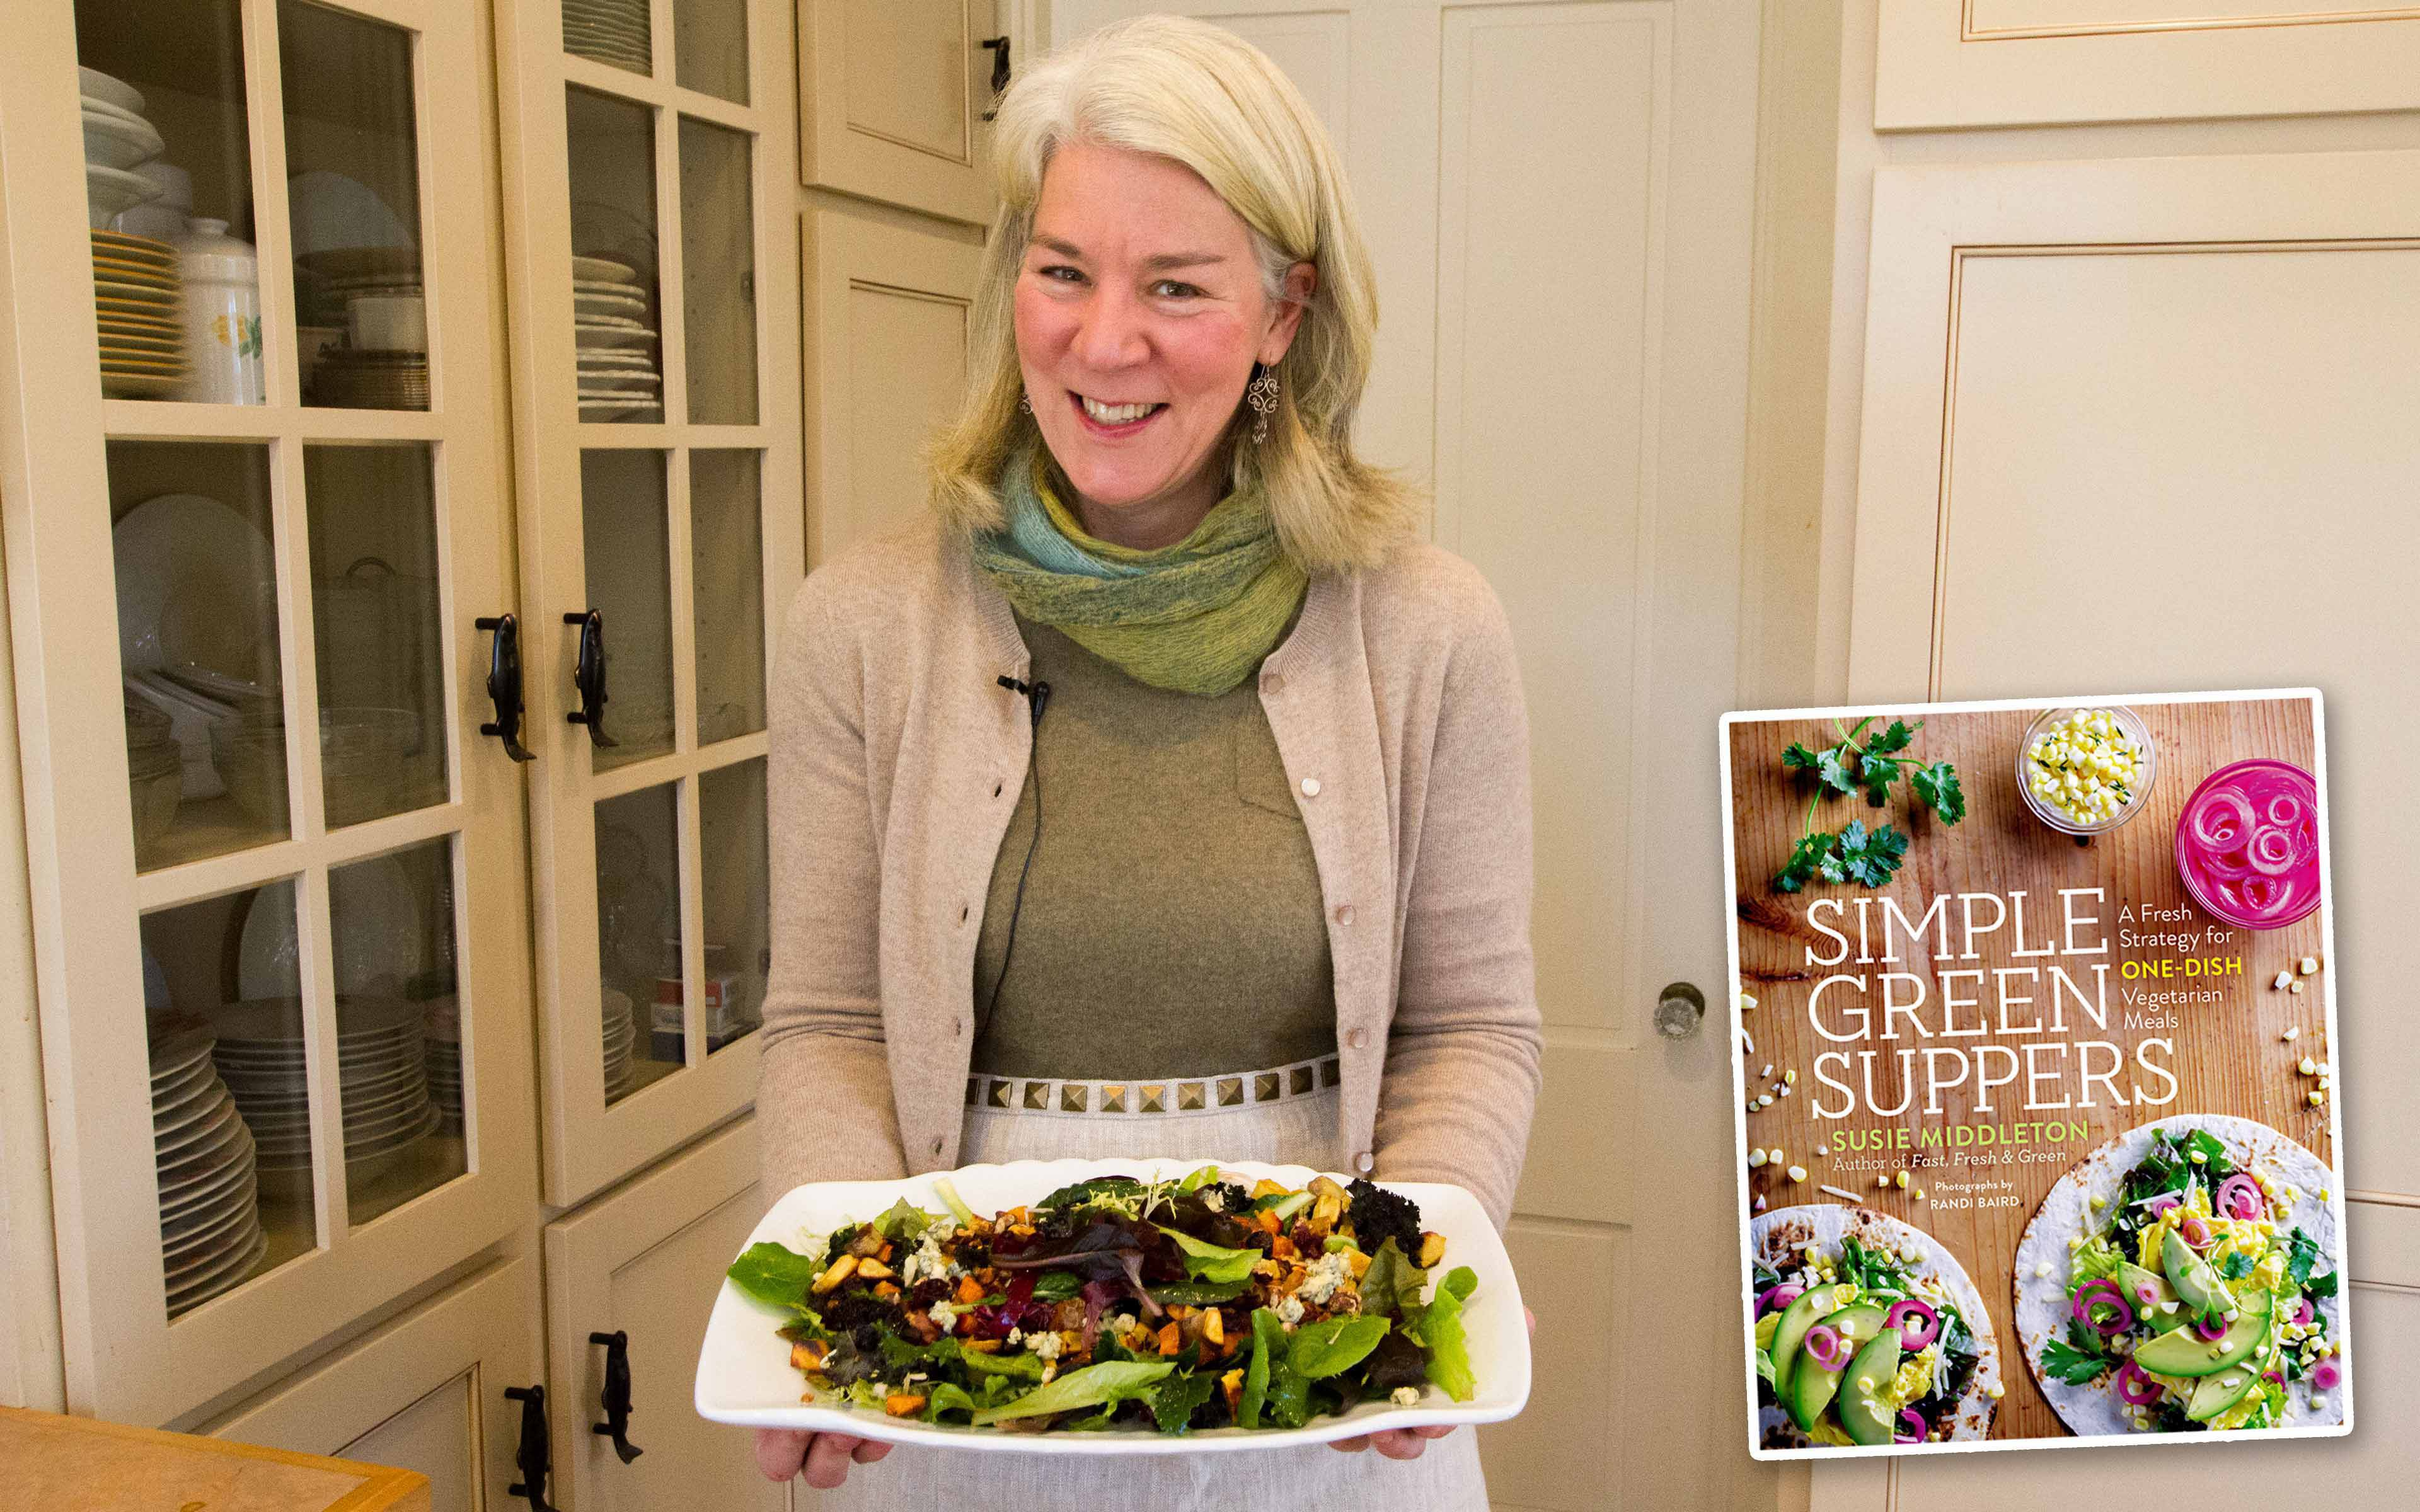 Using some of the root vegetables and other goodies you might have on hand—nuts? cheese?—it's not too hard to whip up a warm winter salad like the one cookbook author and small farmer Susie Middleton shows off here.